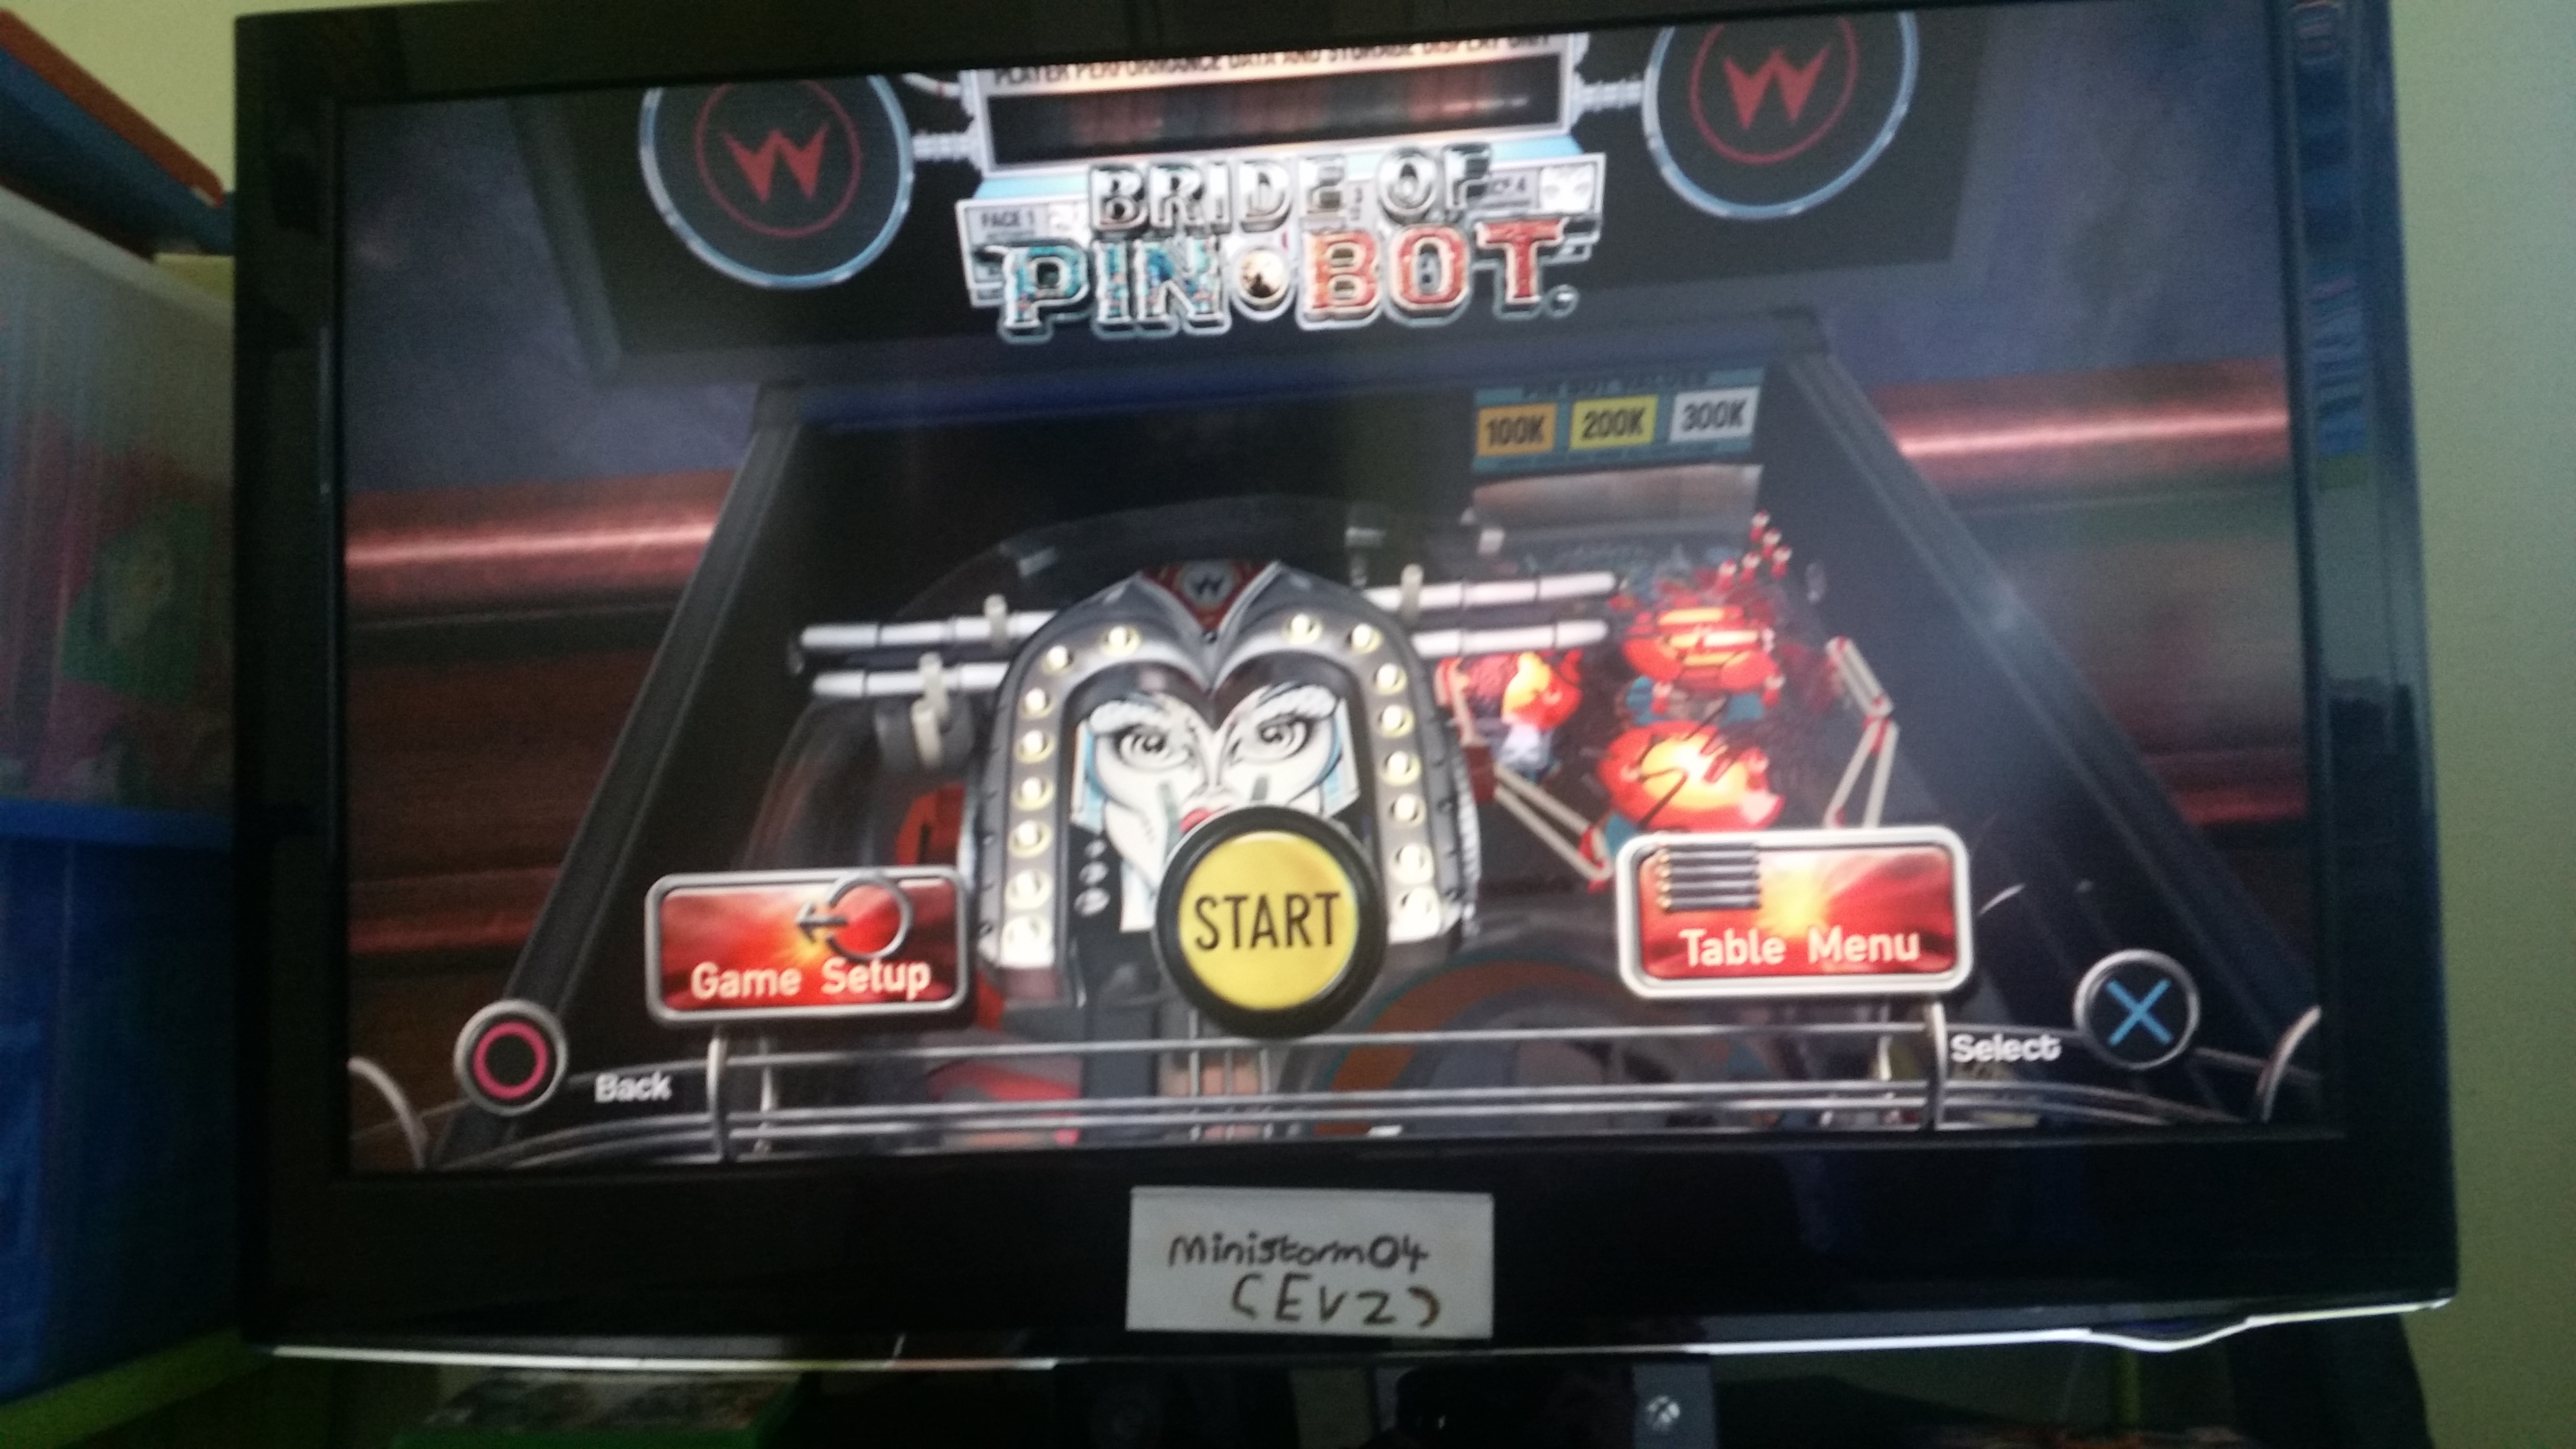 ministorm04: Pinball Arcade: The Machine: Bride of Pin*Bot (Playstation 4) 4,307,790 points on 2019-06-10 12:23:11